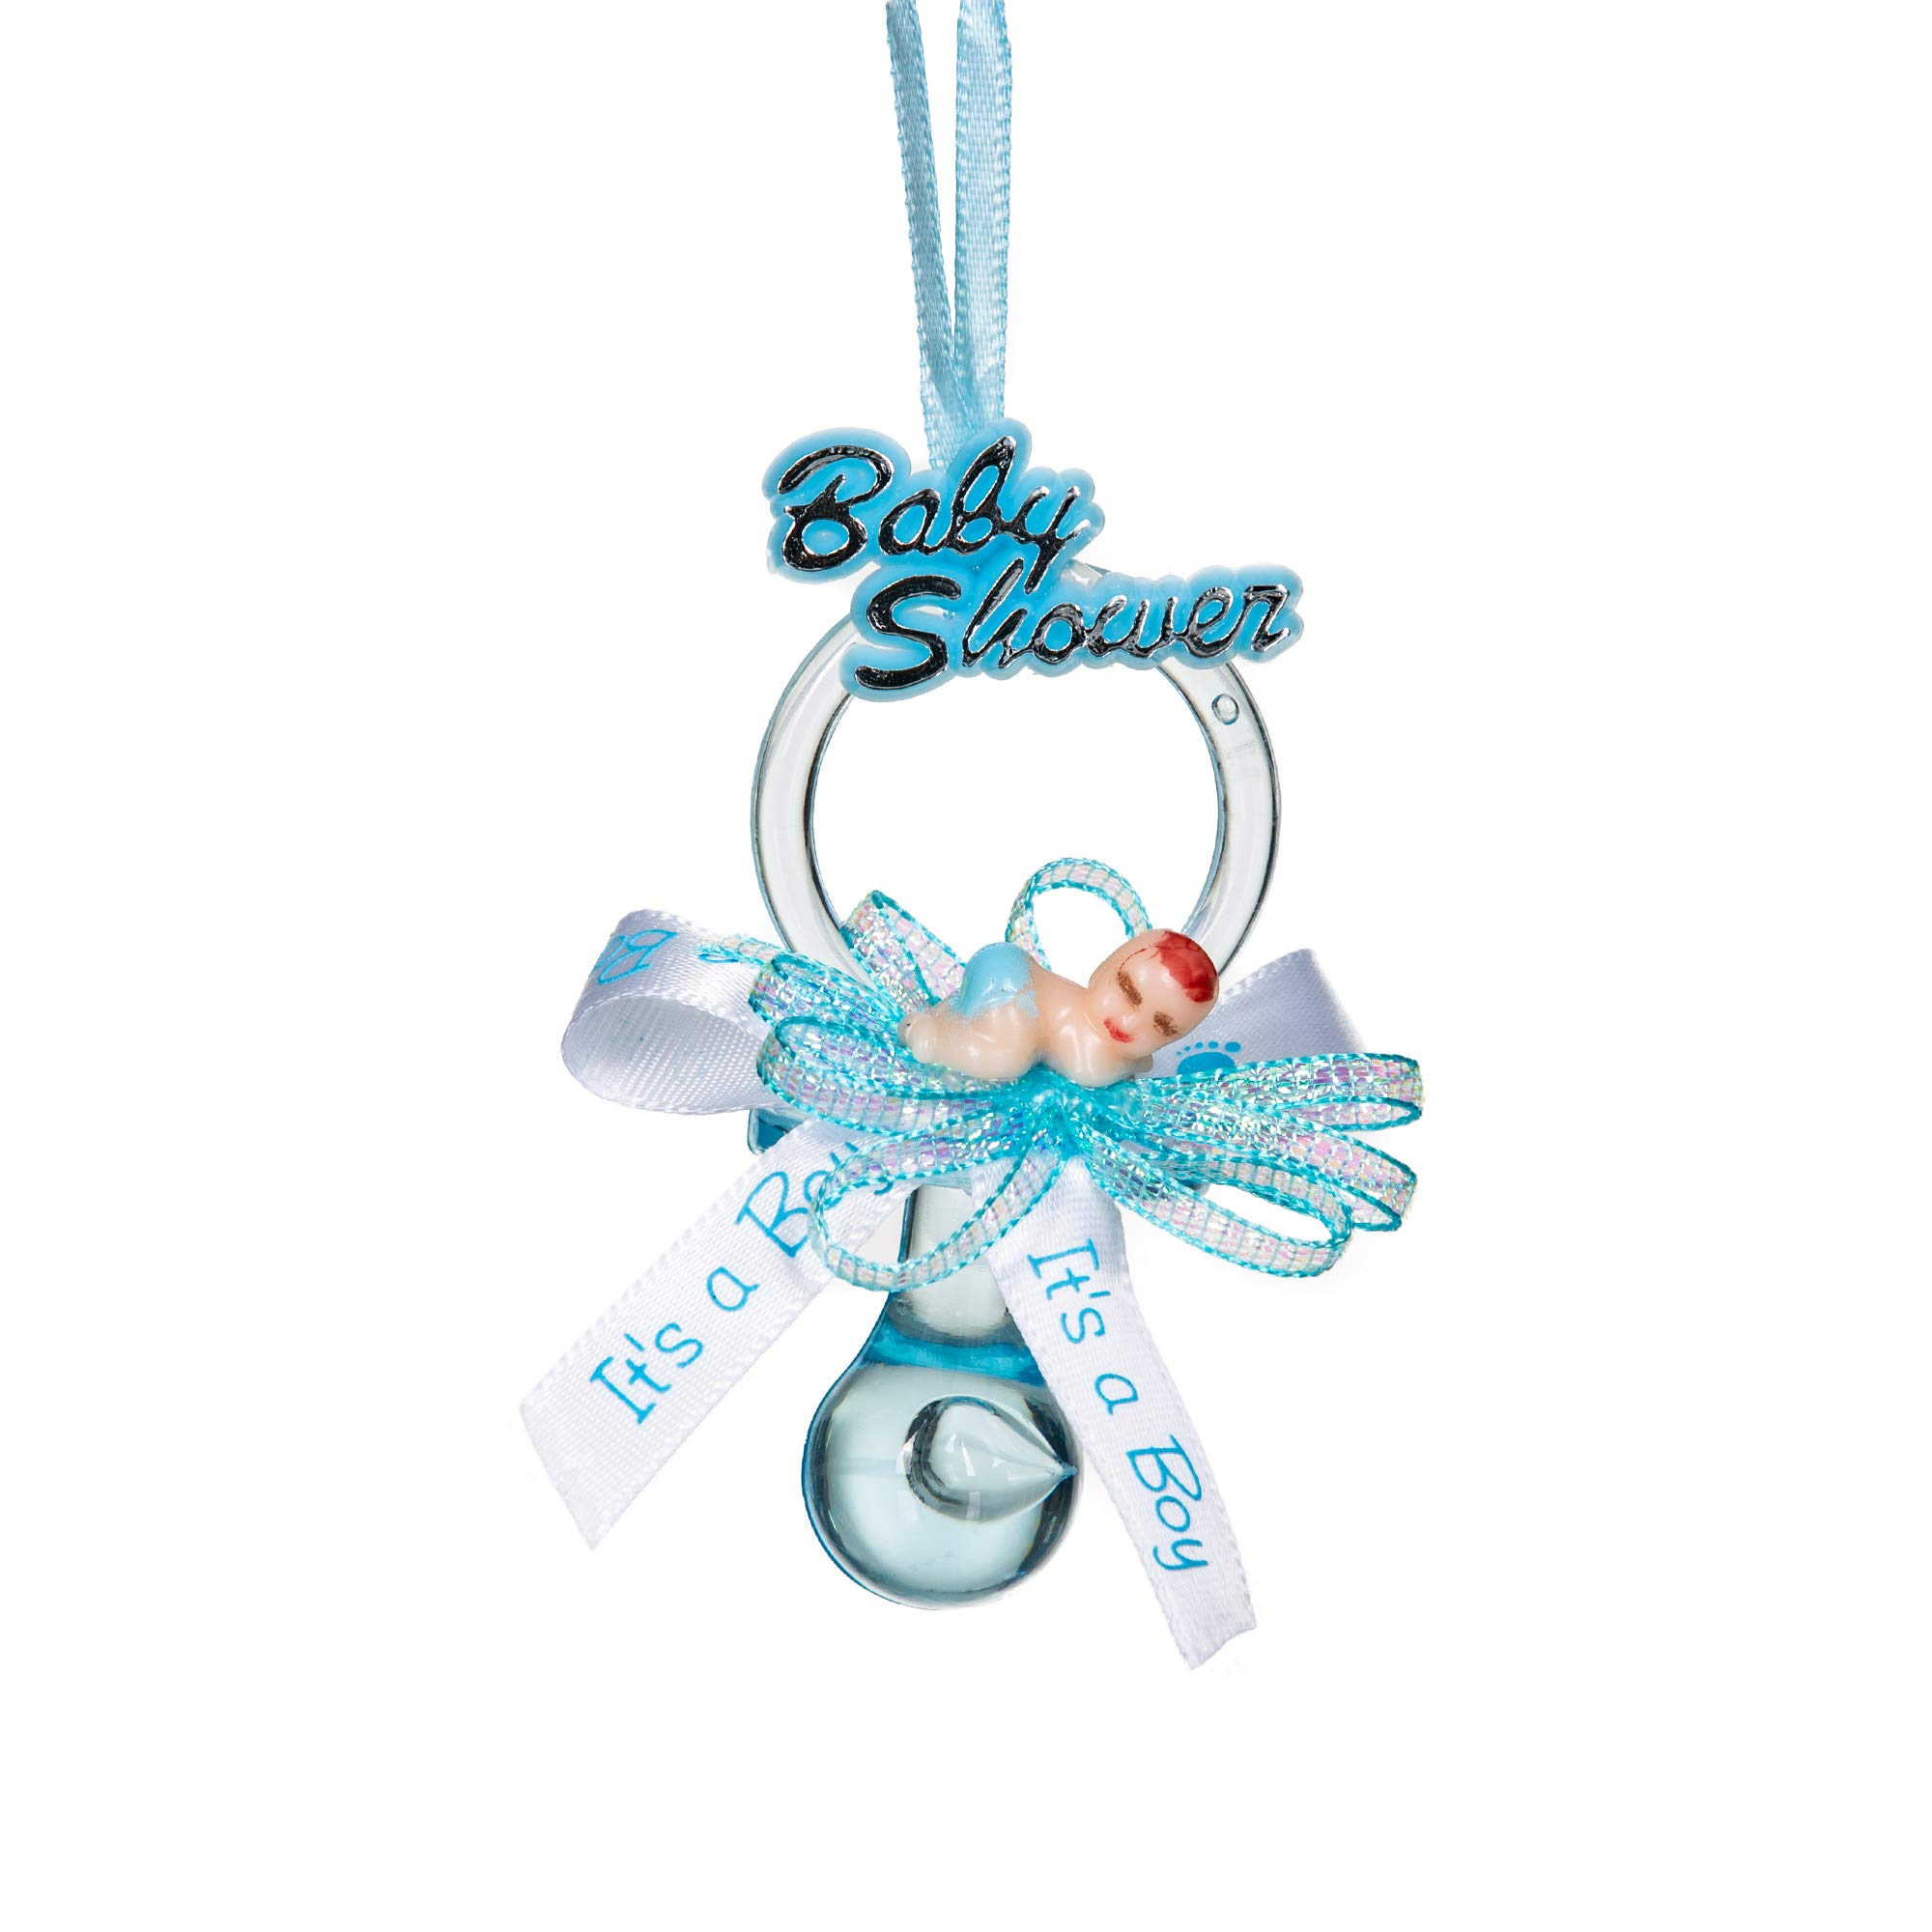 Baby Shower Party Favor Pacifier Necklace (12 Pcs.): Adorable Keepsake for Expecting Moms & Guests, Premium Supplies for Gender Reveal Announcements, Decorations, Games, Cupcake Toppers, More (Blue) by Navigate Life's Journey